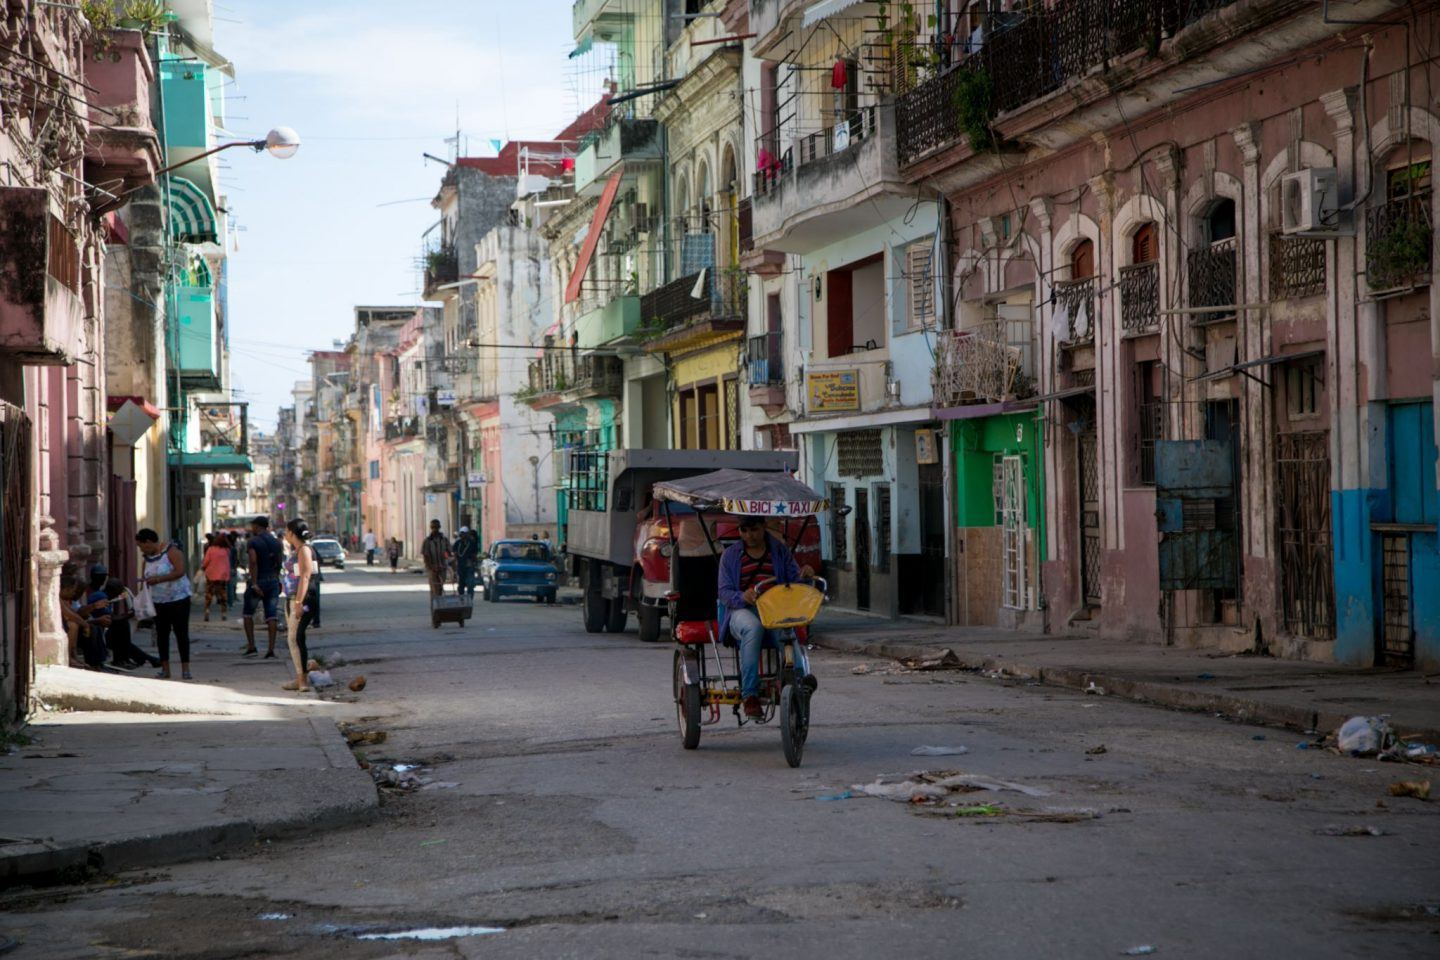 Cuba essential guide everything you need to know. Travel writer Nadia El Ferdaoussi the daily self. Havana transport